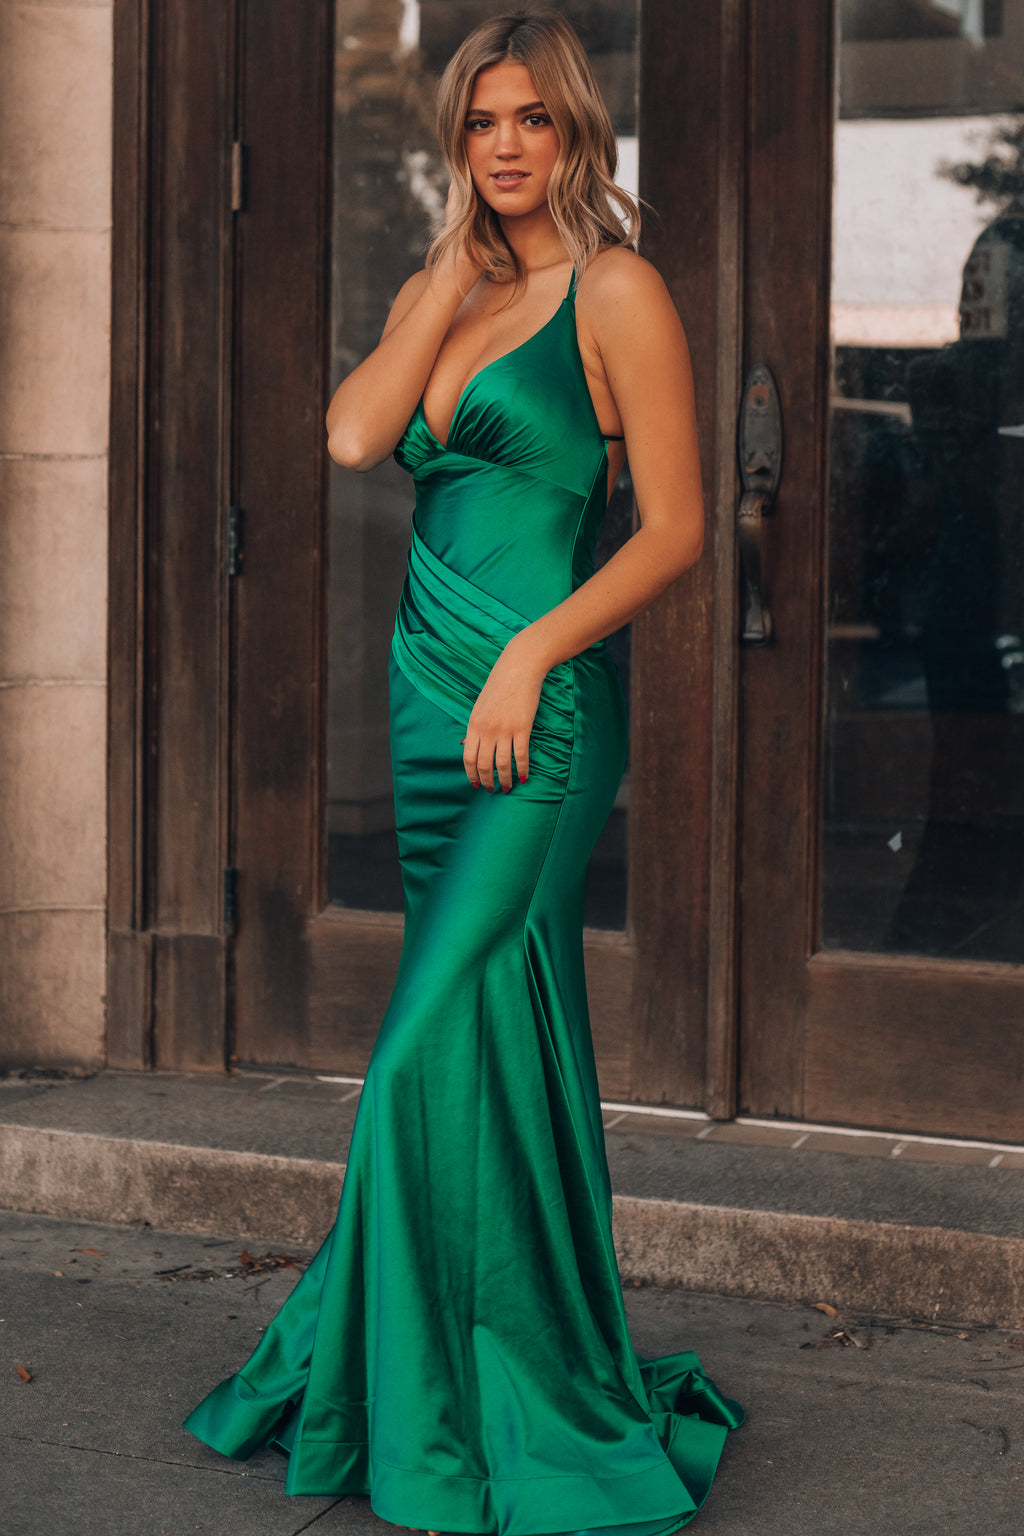 Edge Of Romance Gown (Emerald)